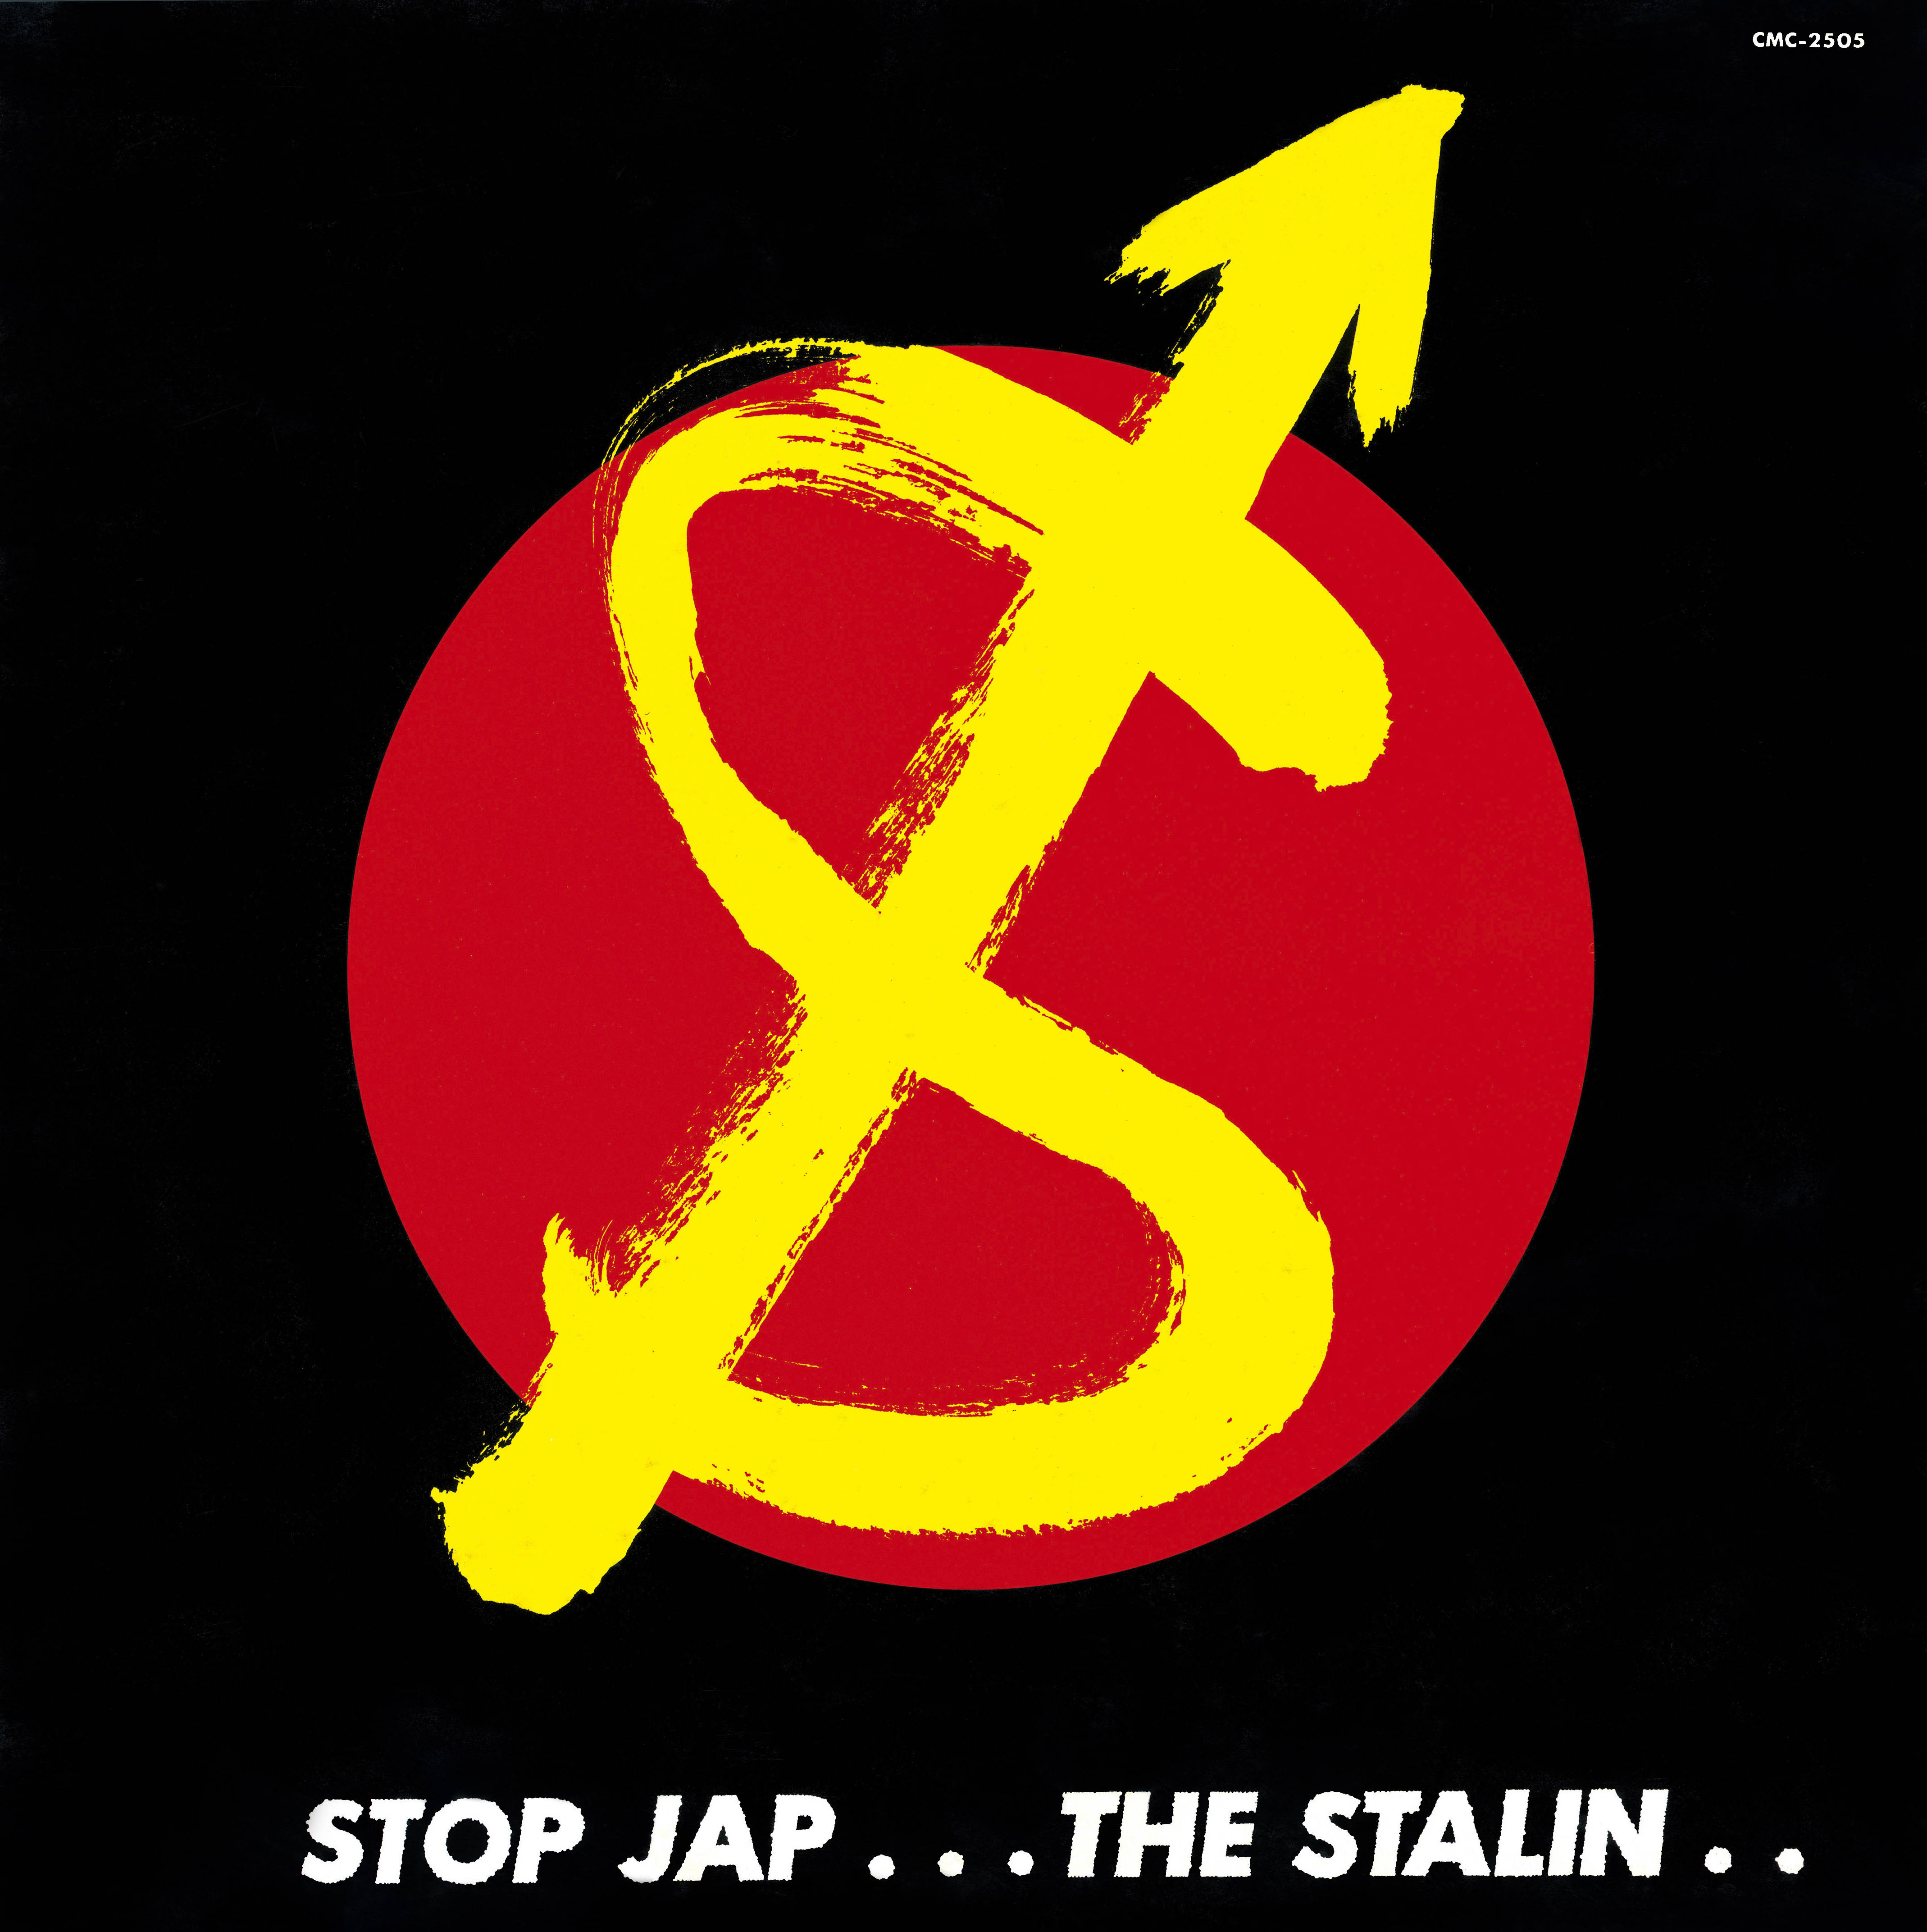 THE STALIN / Stop Jap - OTOTOY